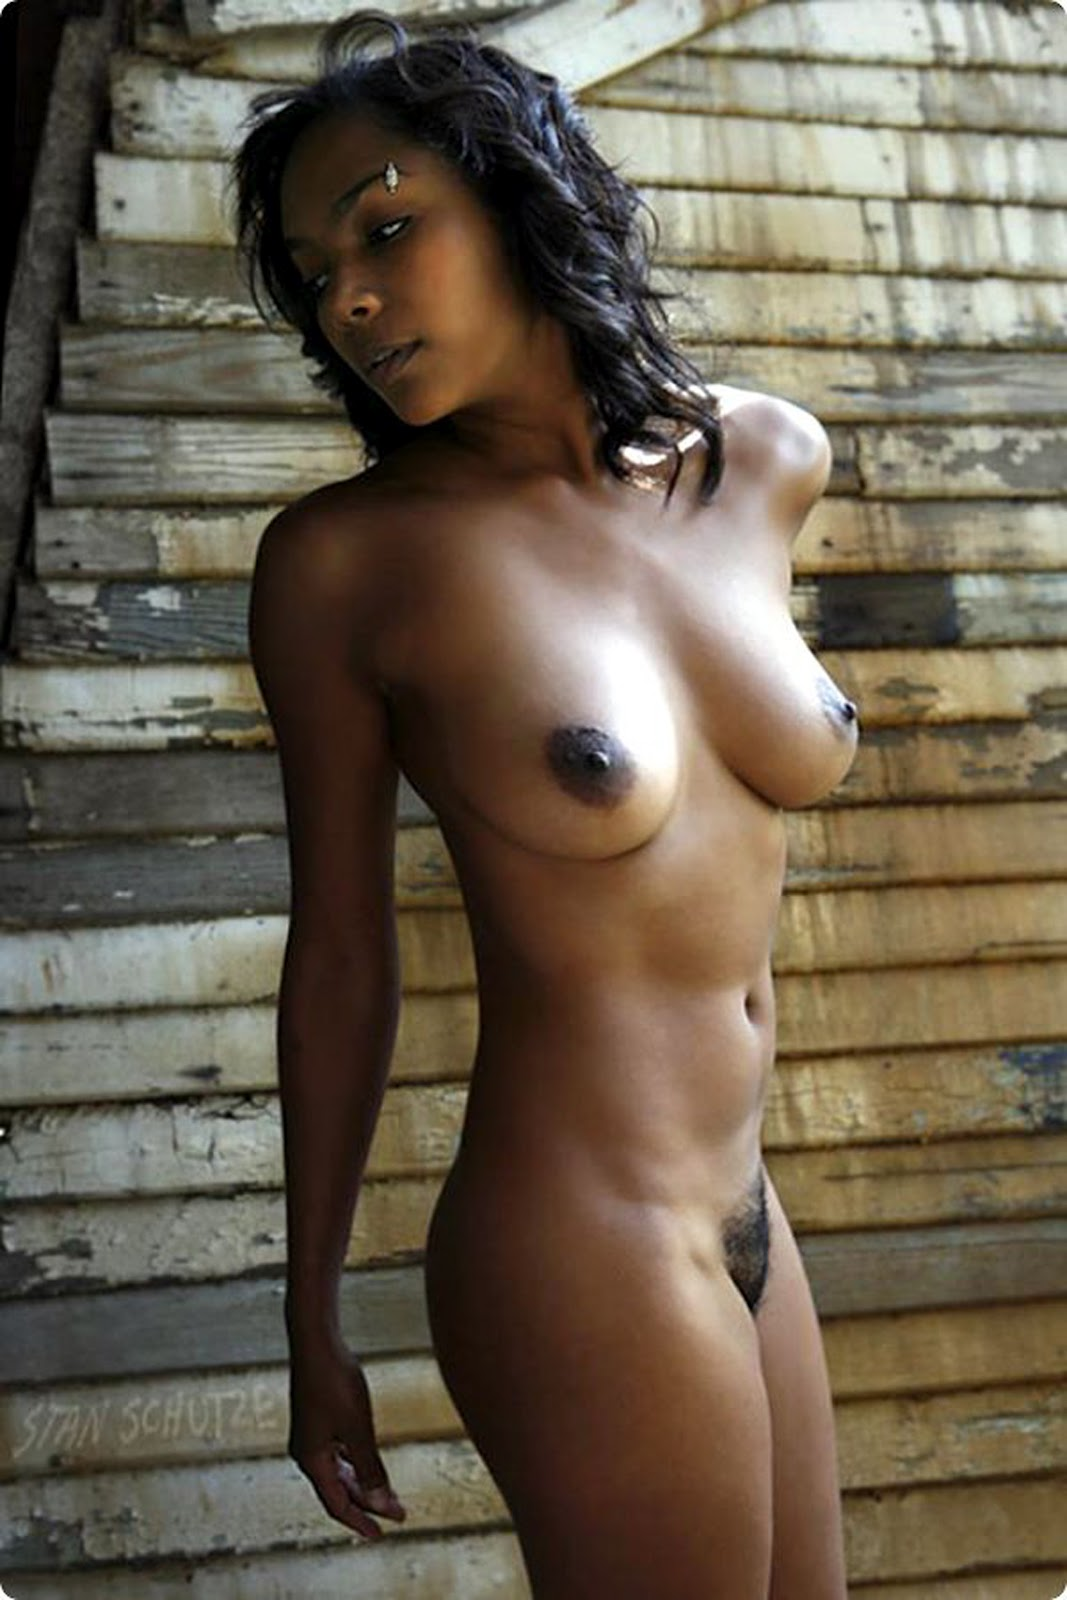 Nude beautiful women interesting. Tell